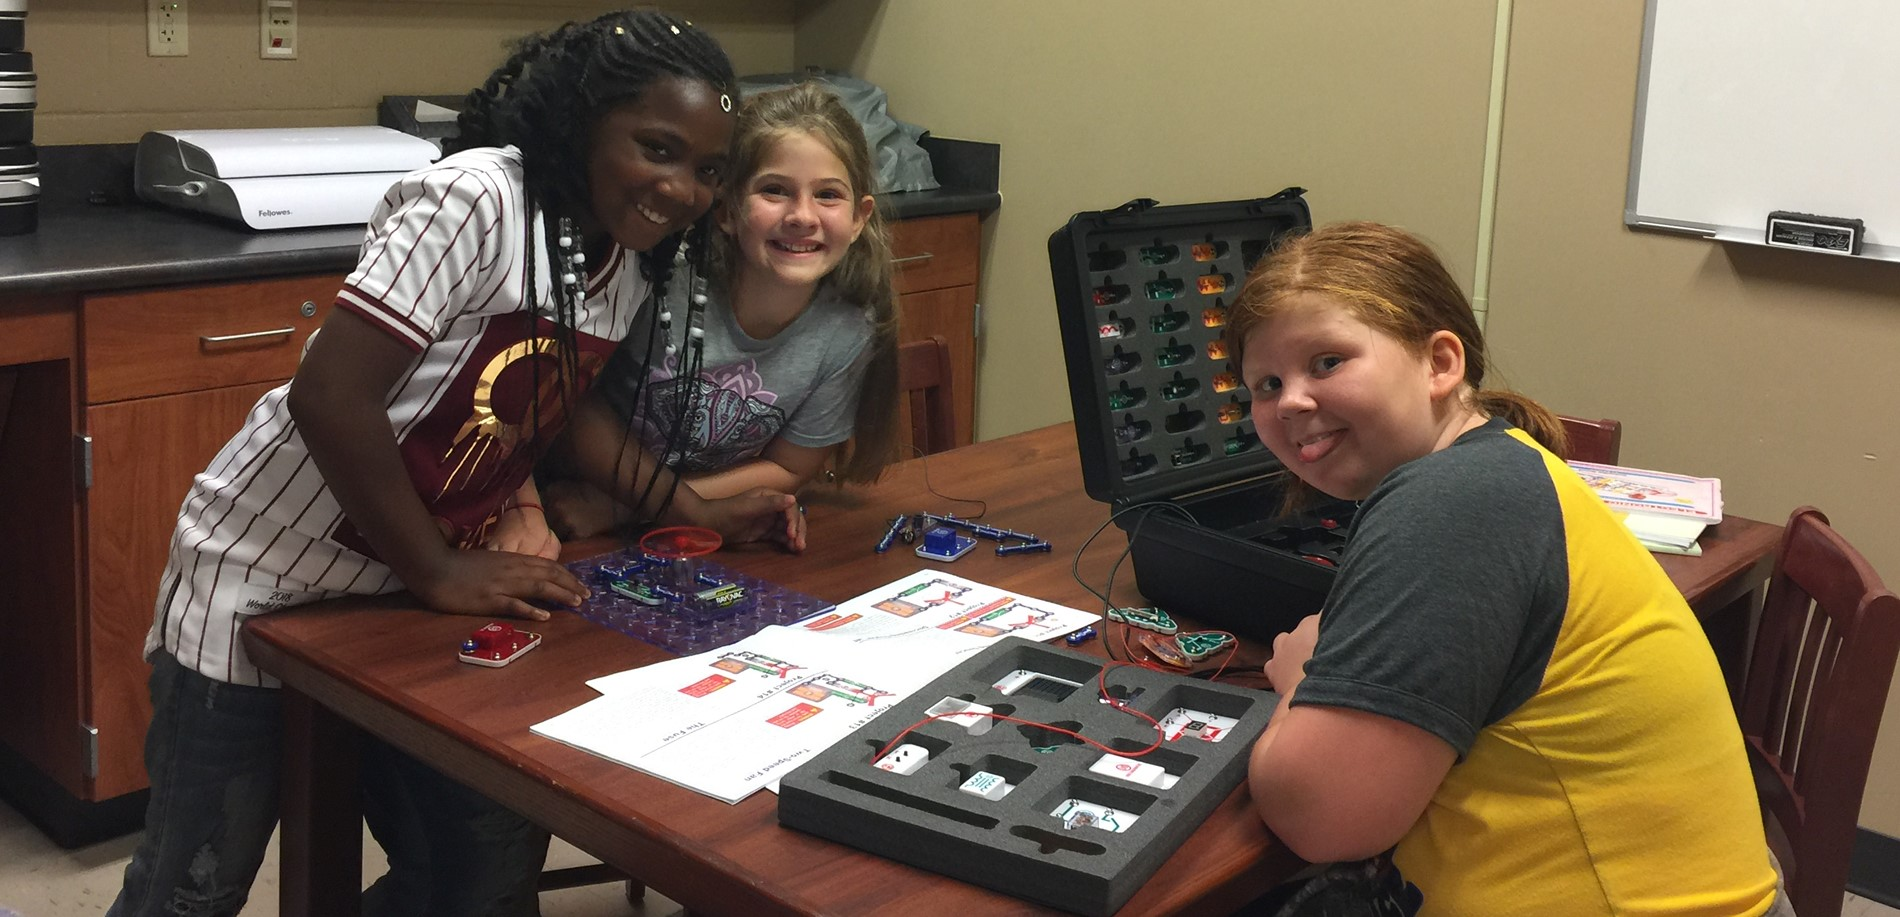 Radcliff Students work with circuits in the media center.